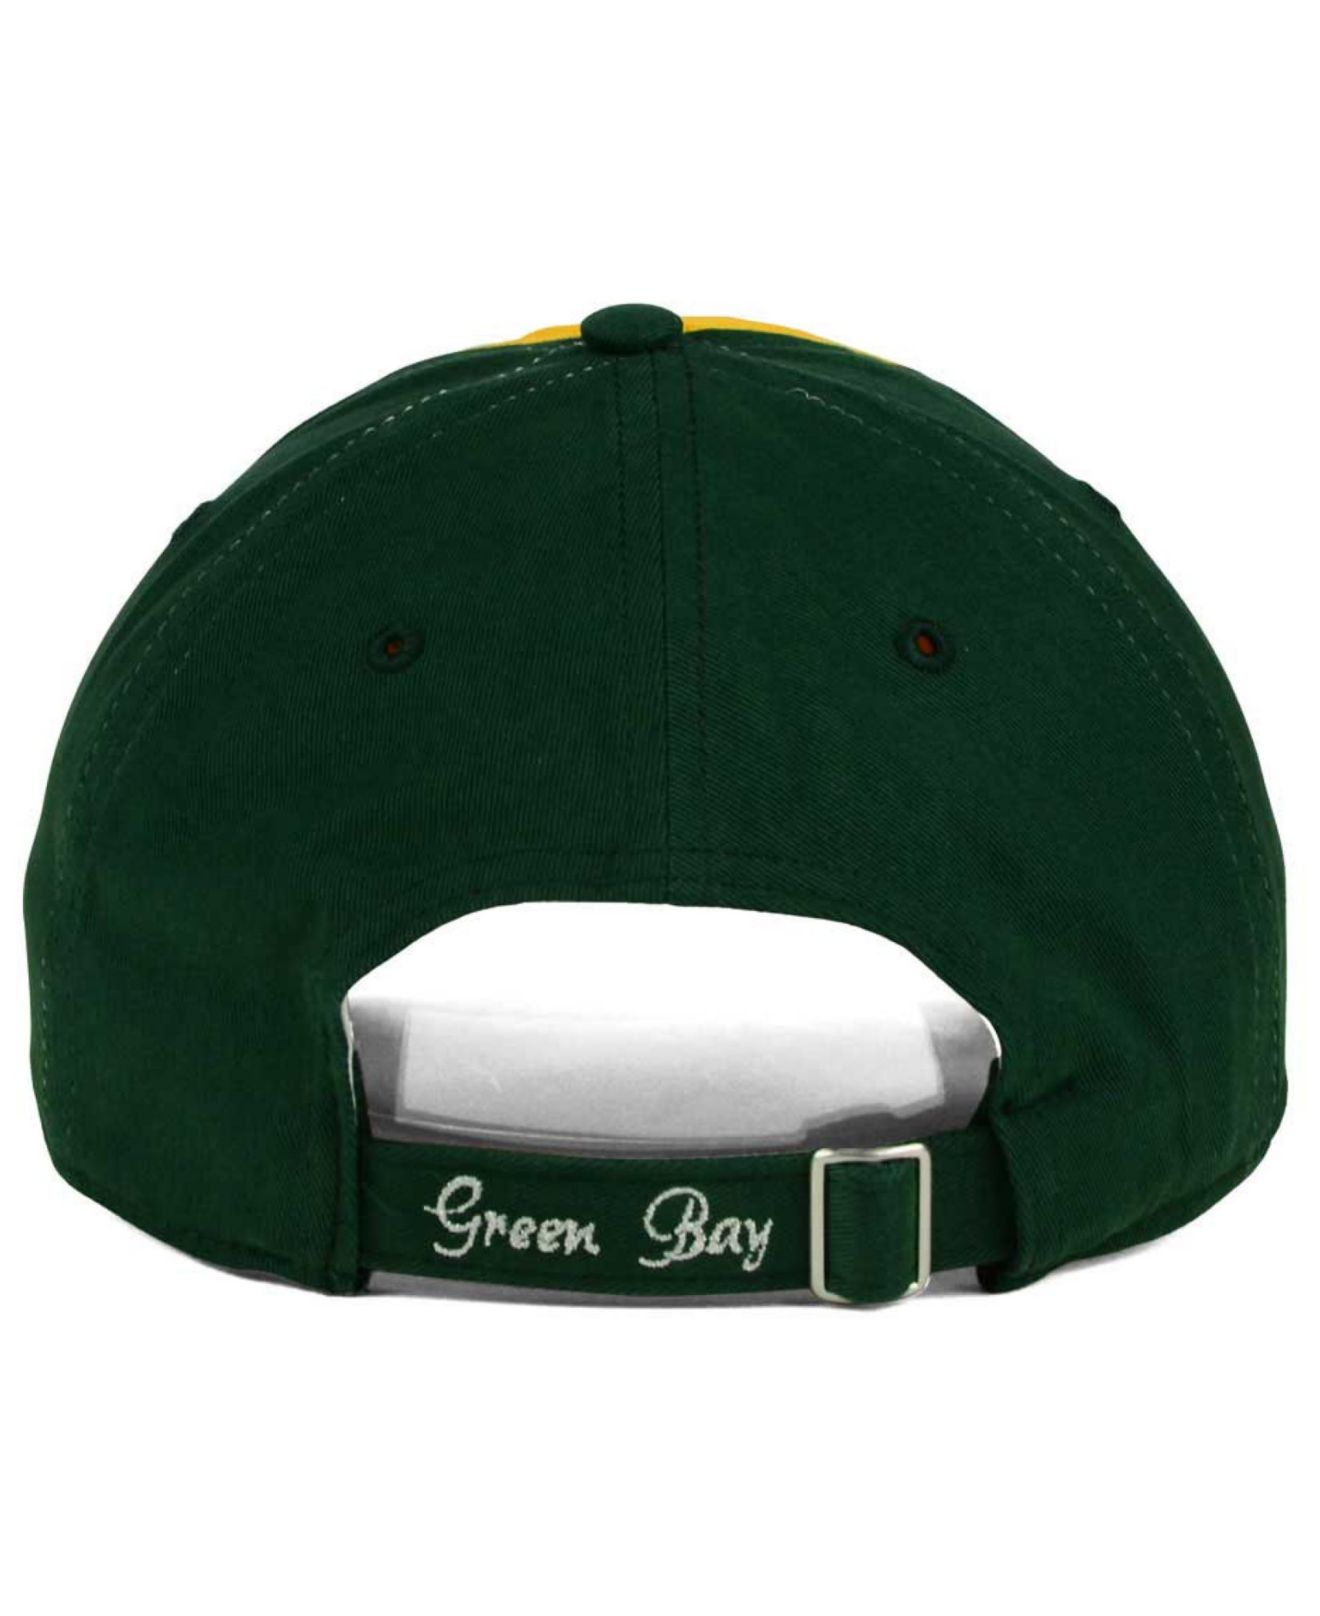 Lyst - 47 Brand Women s Green Bay Packers Sparkle 2-tone Adjustable ... 5d30e297e